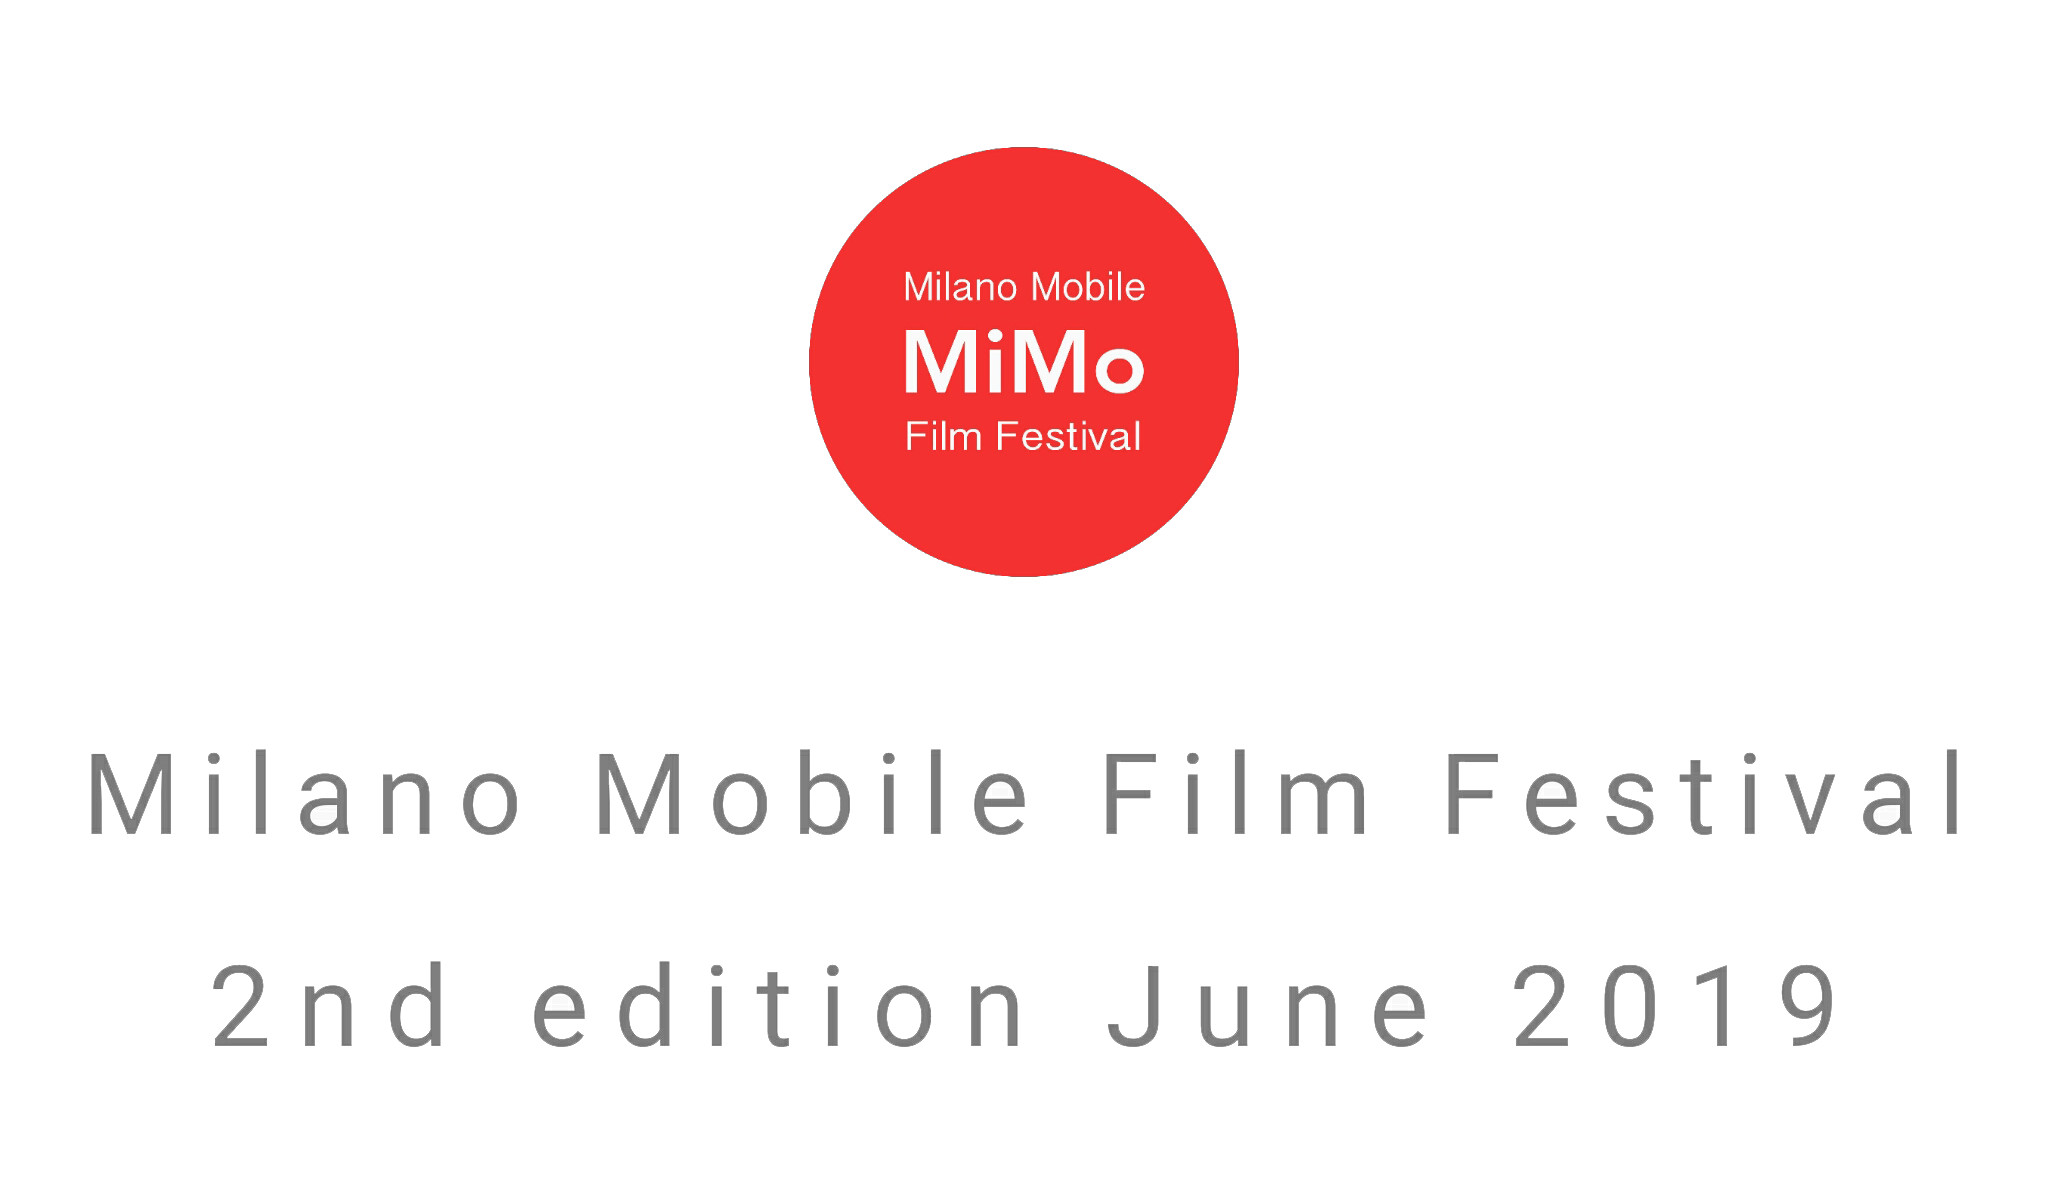 MiMo - Milano Mobile Film Festival 2nd edition June 2018